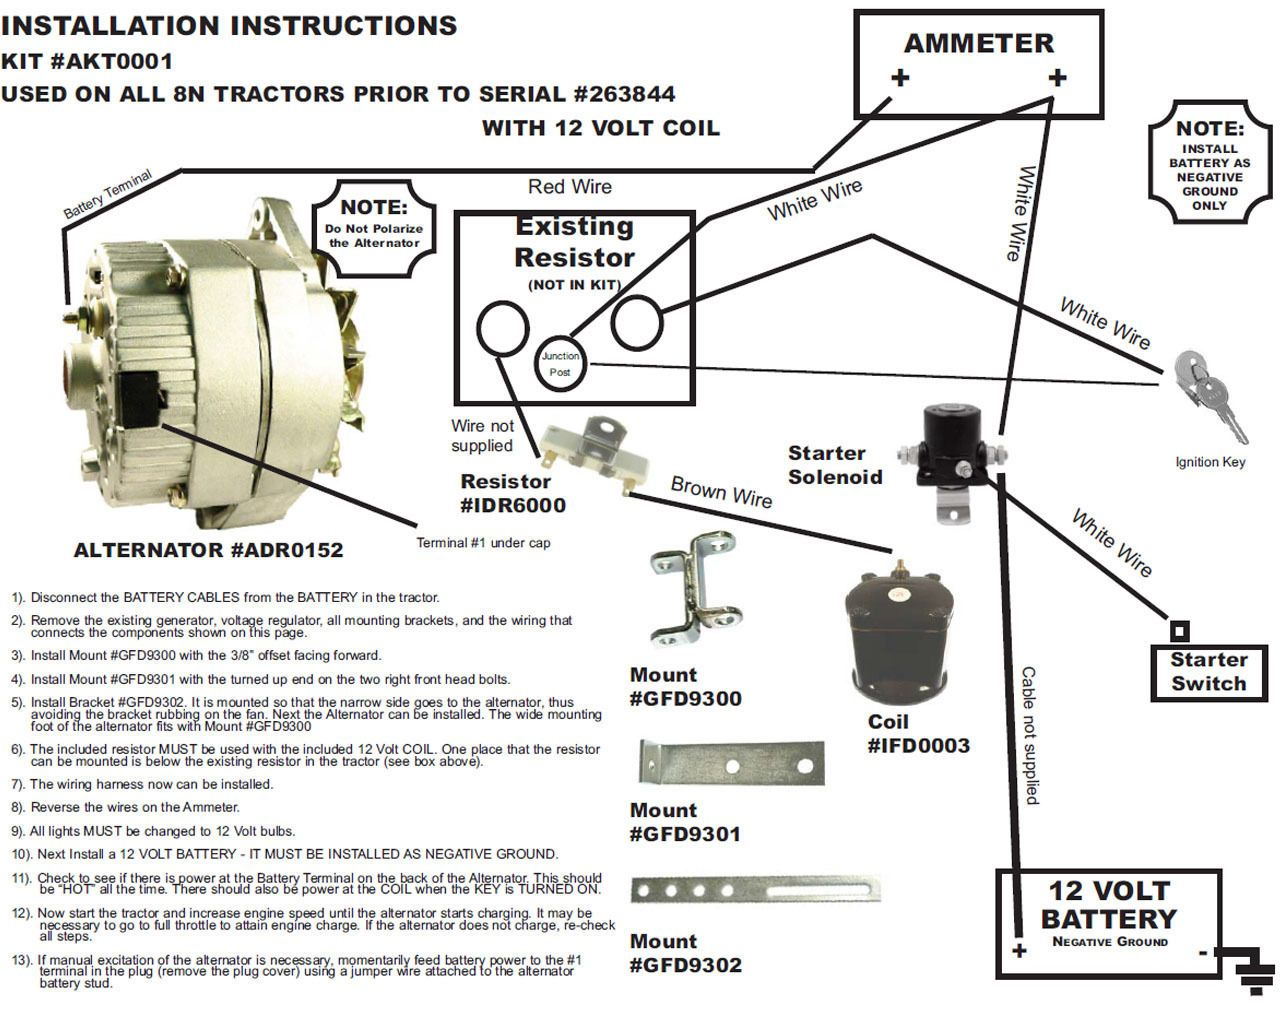 Ym 1867 Manual Wiring Diagram Shows All Three Wires Going Into The Altenator Free Diagram